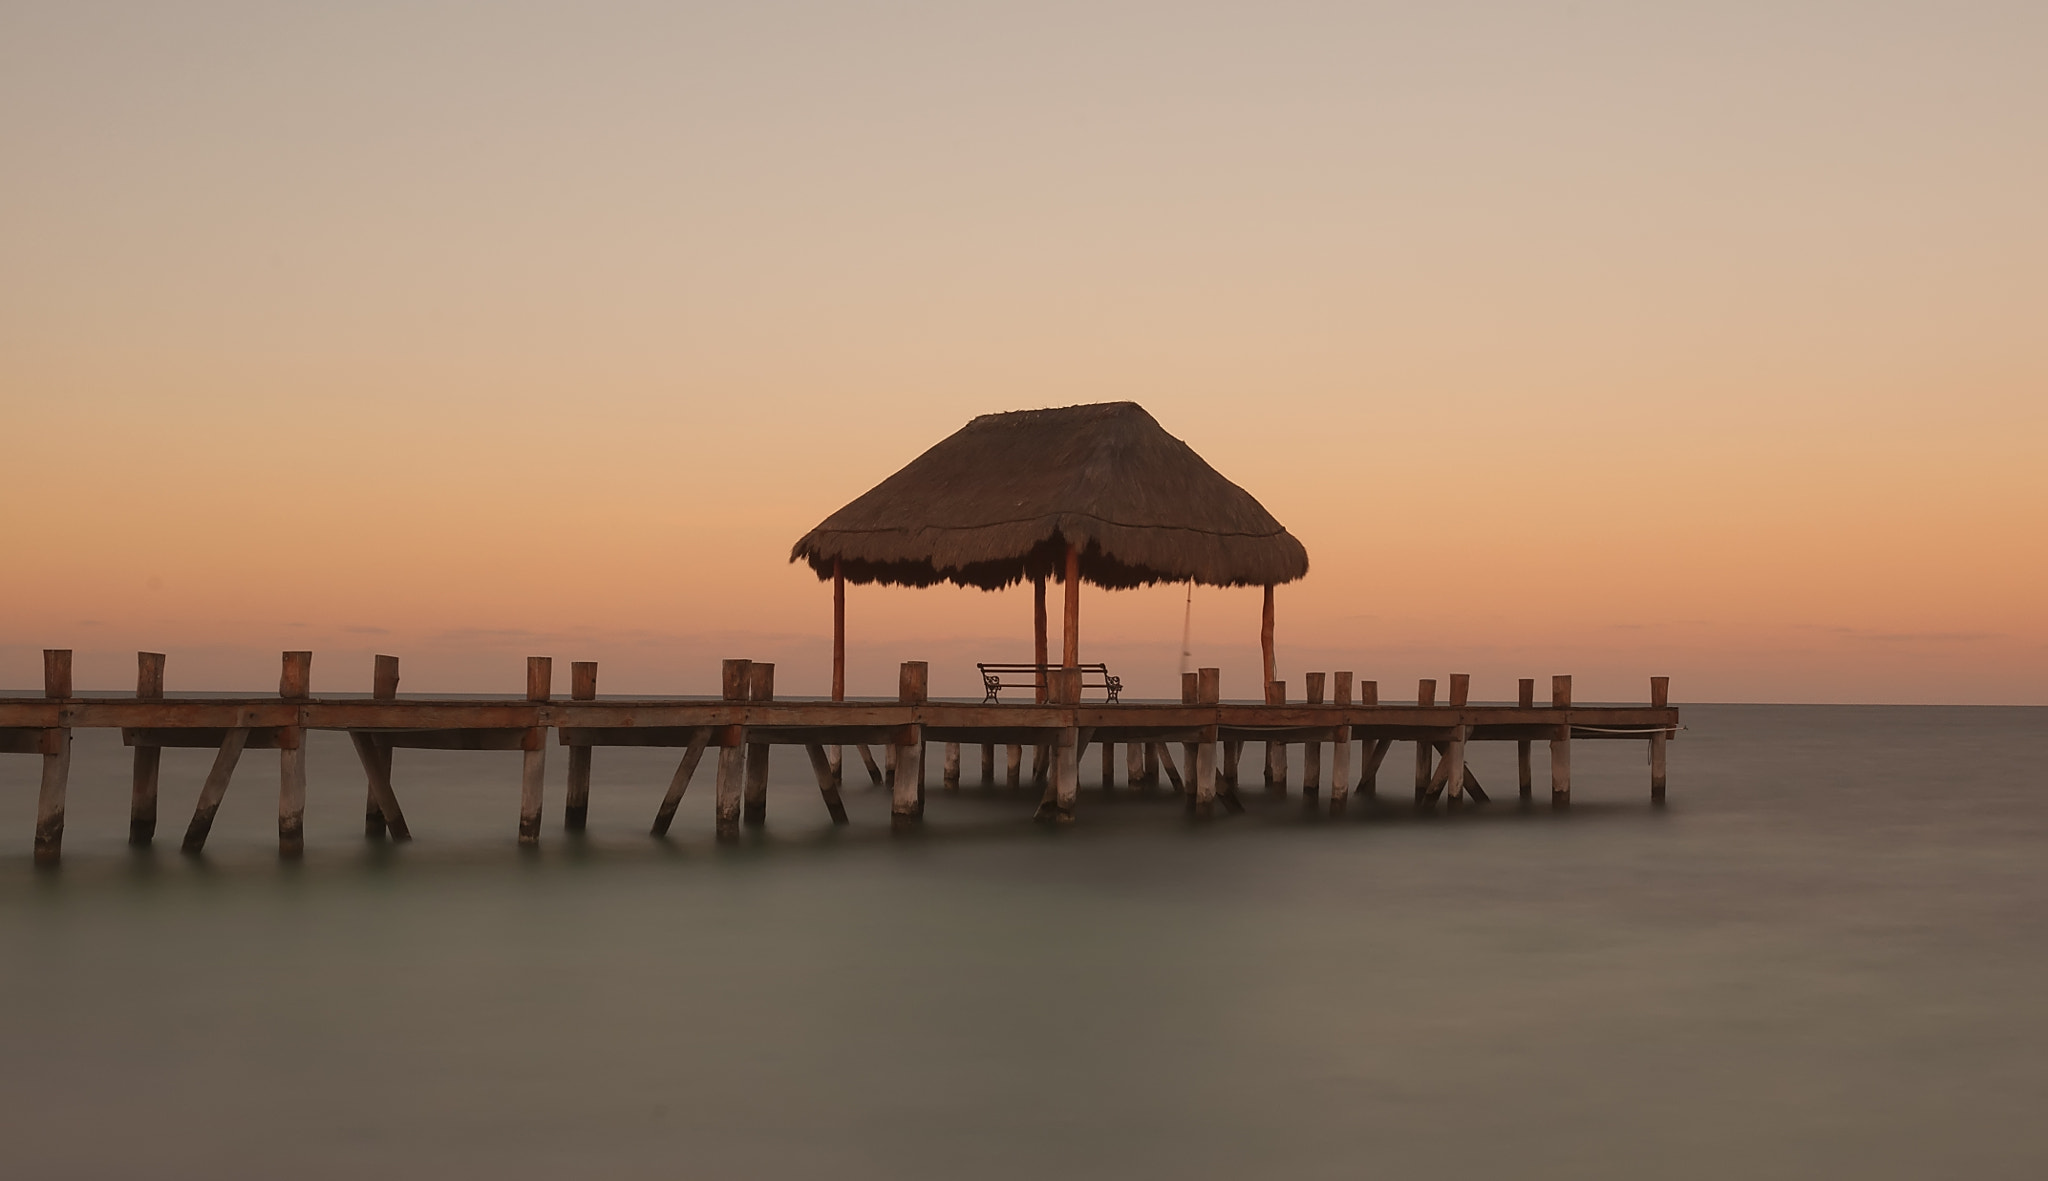 Photograph Sunset in Mexico by Yves Gagnon on 500px